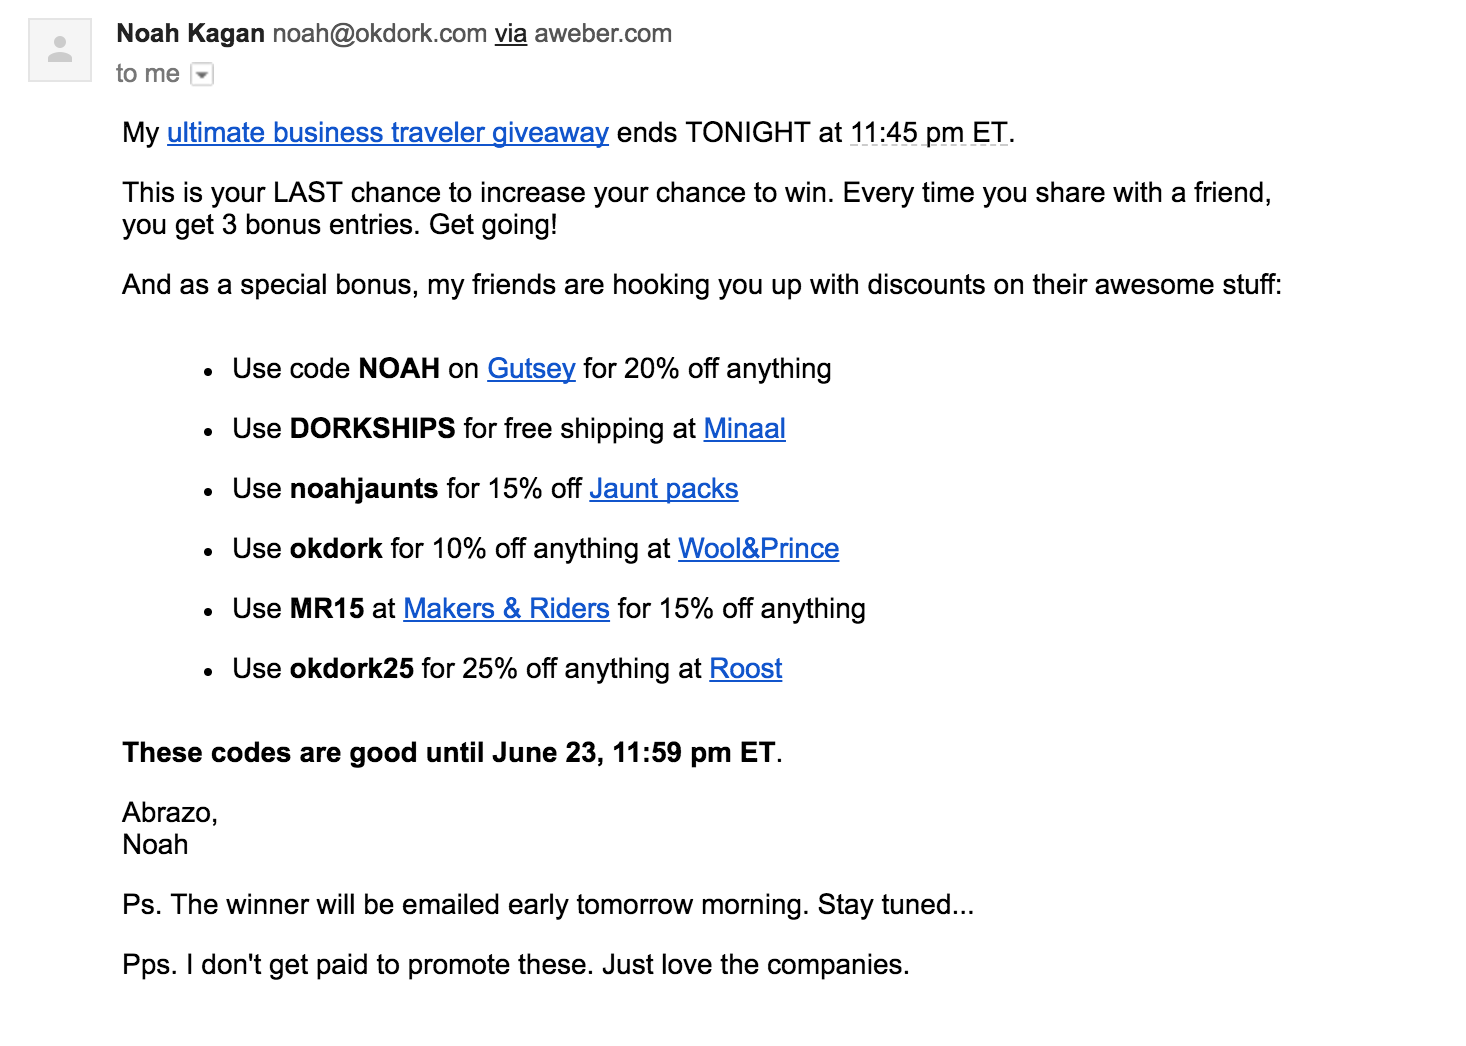 Screenshot of a promotional email sent by Noah Kagan